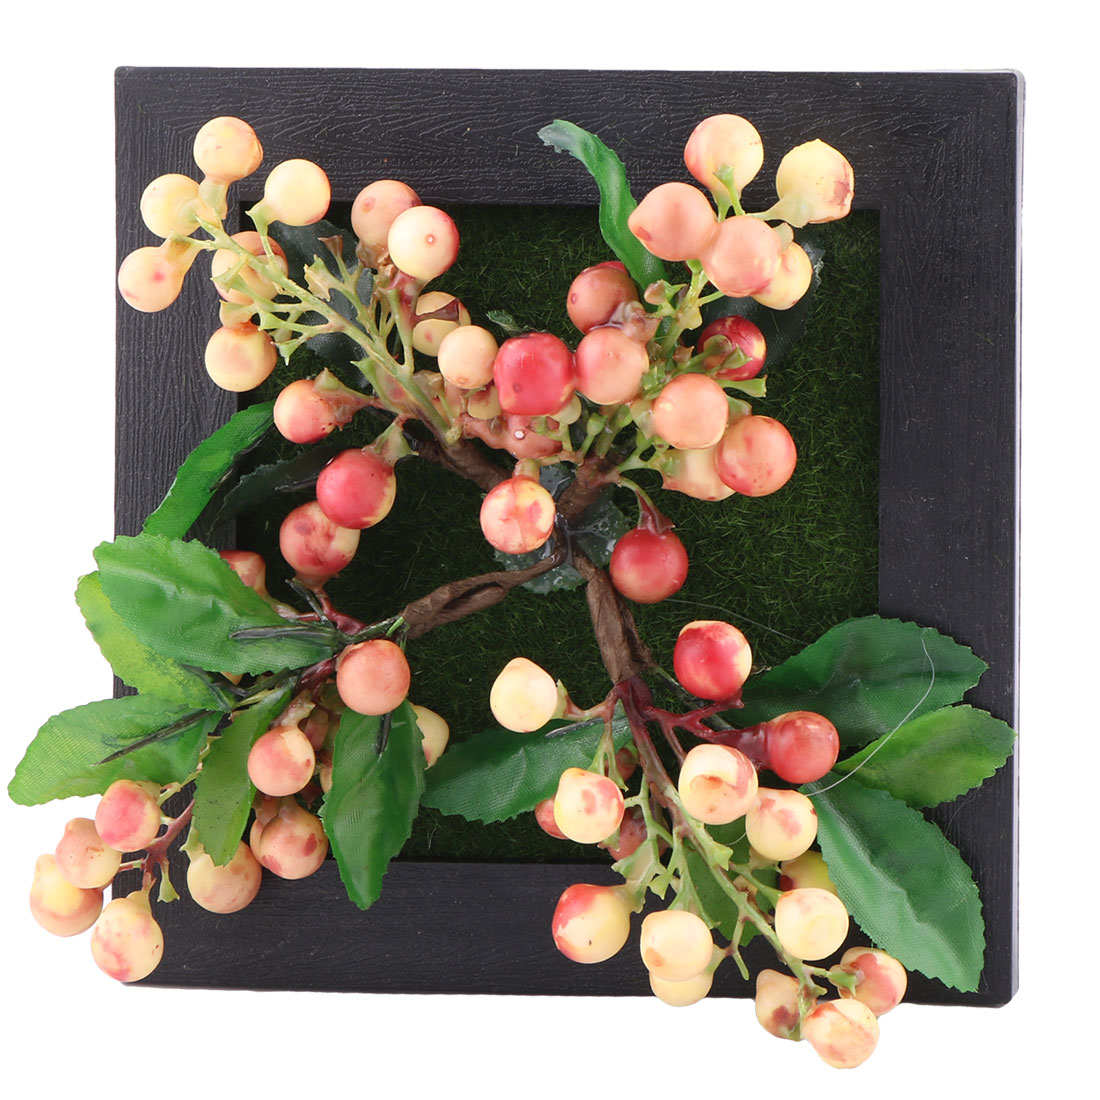 Family Plastic Rustic Style Wall Hanger Artificial Succulent Plant Flower Frame